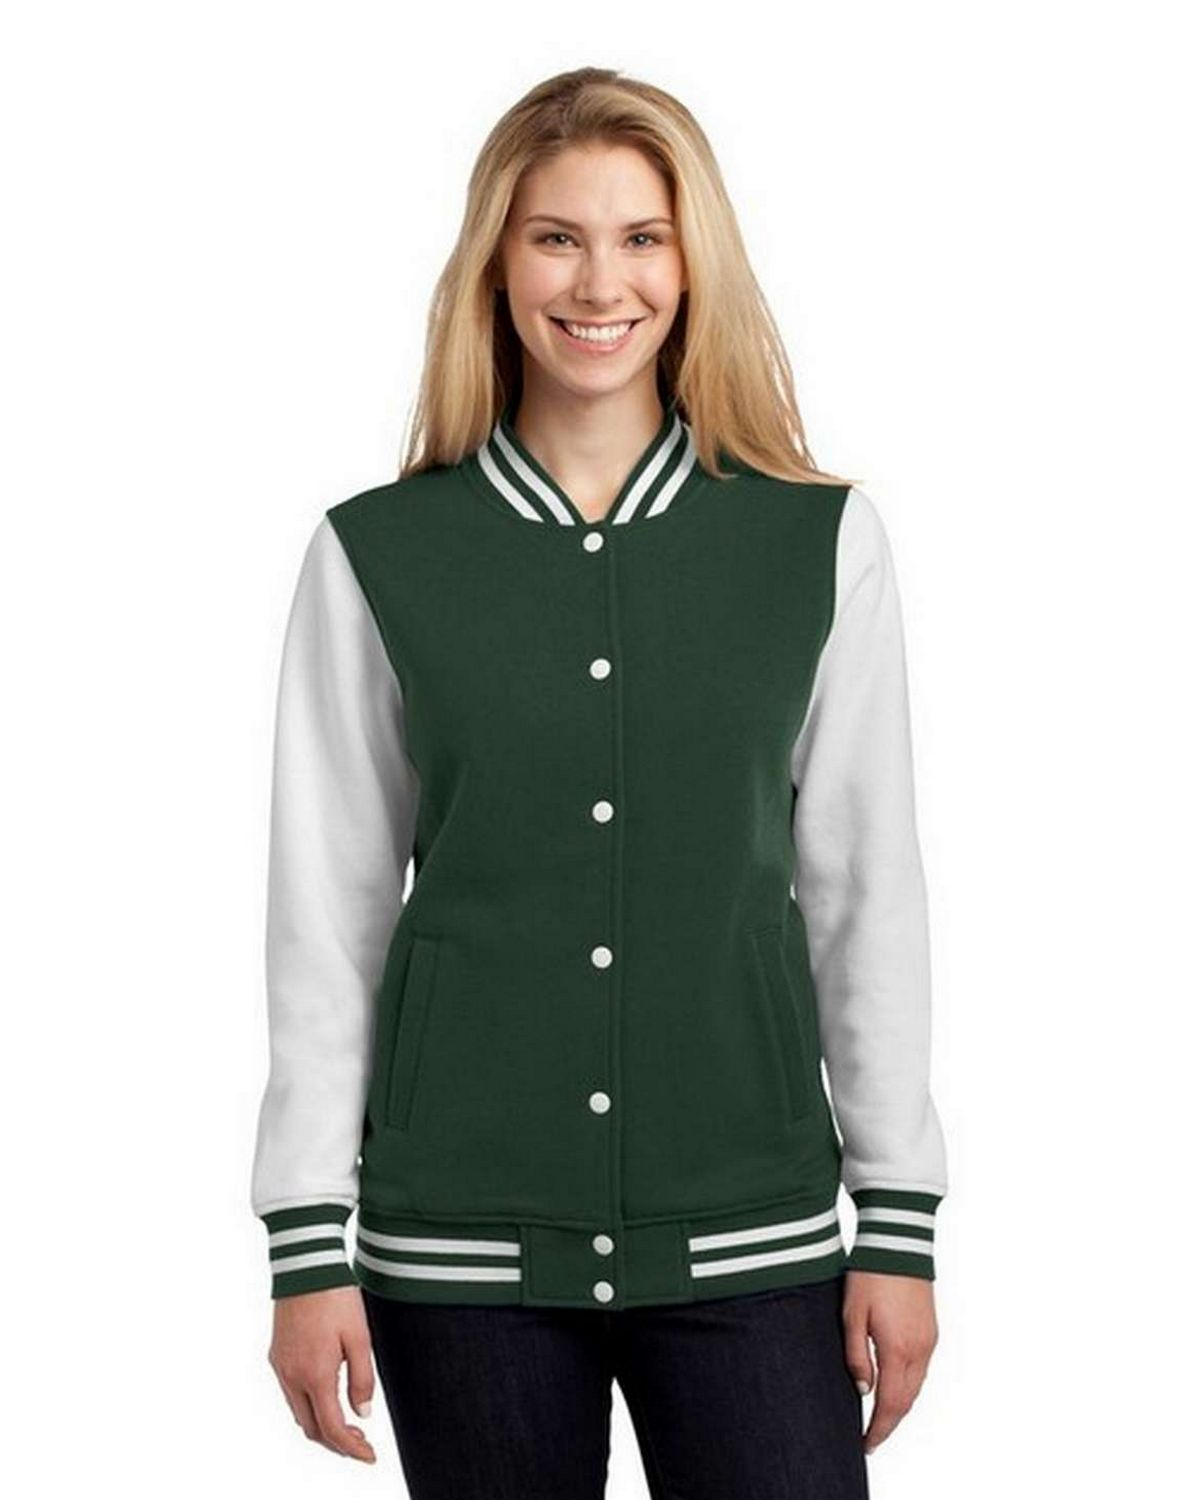 Sport-Tek LST270 Ladies Fleece Letterman Jacket